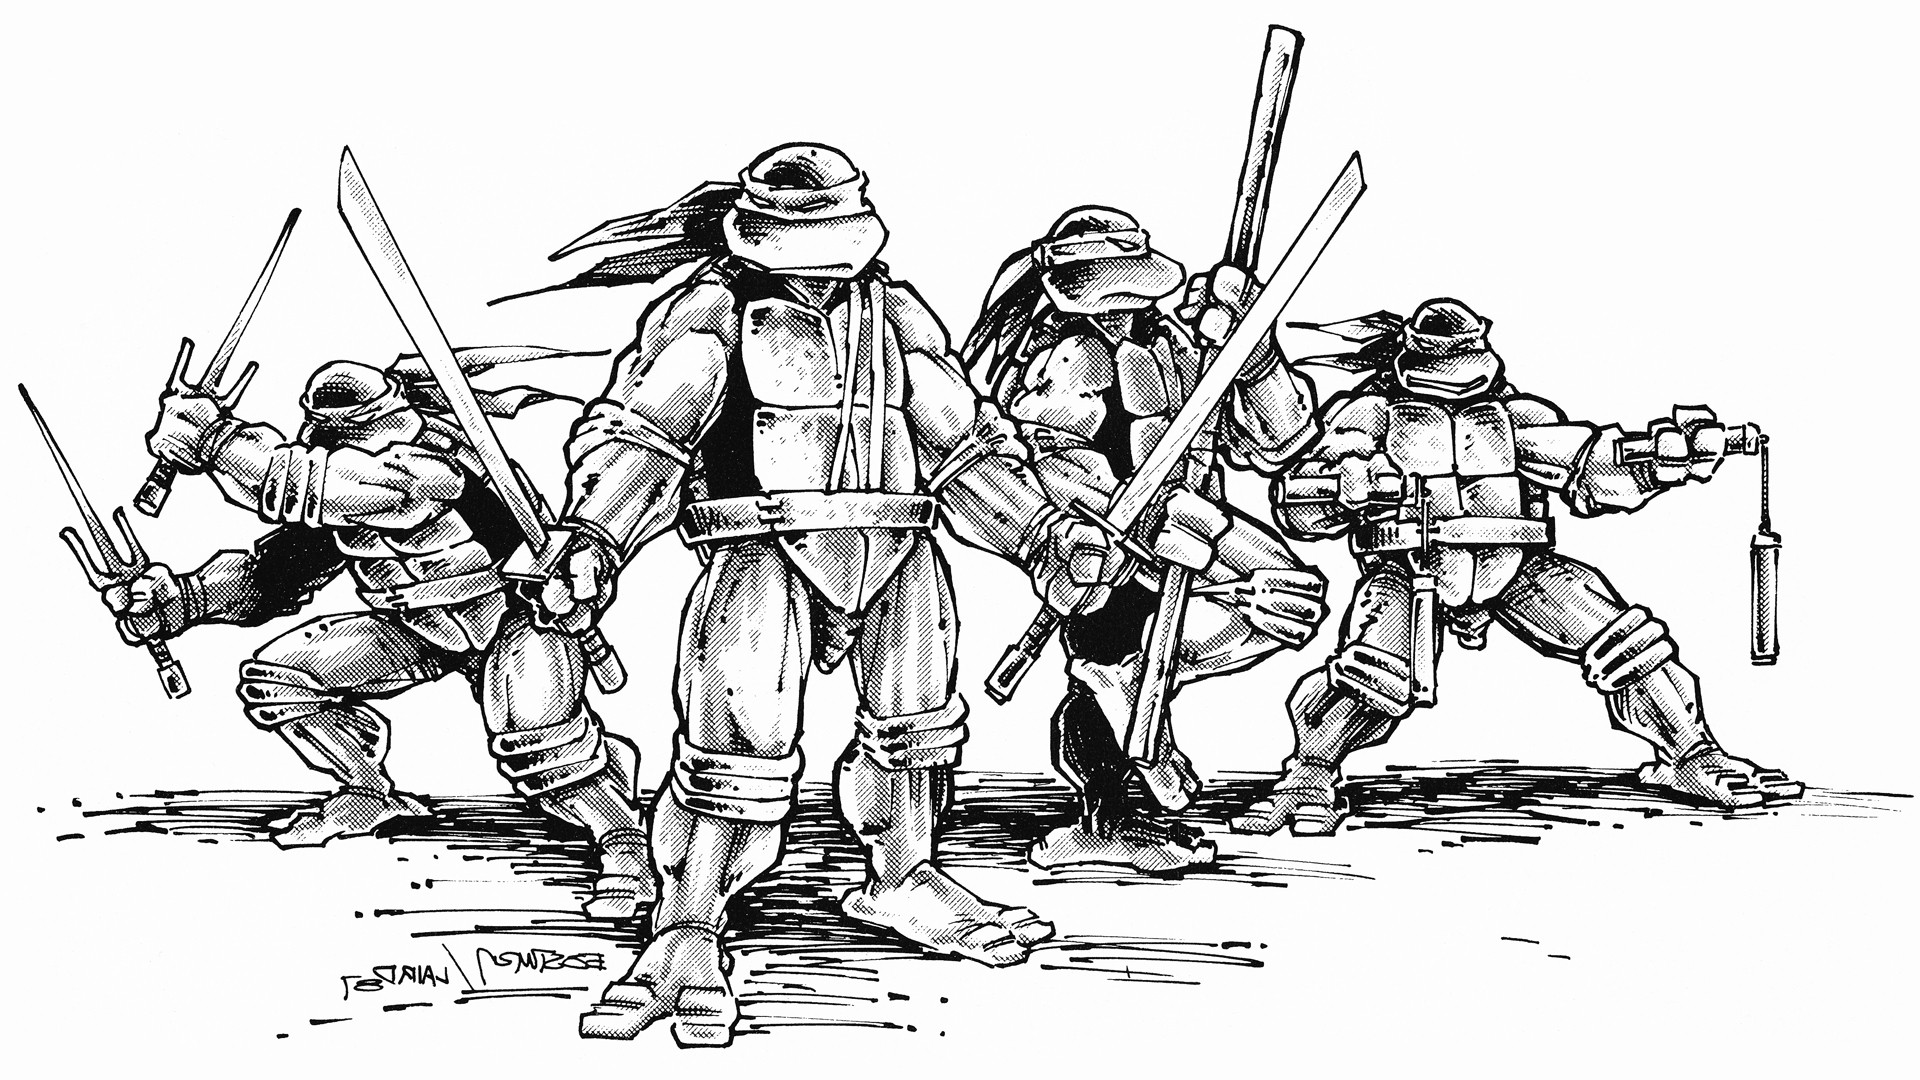 picture of ninja turtles hd exclusive how to draw teenage mutant ninja turtles 2012 of picture ninja turtles